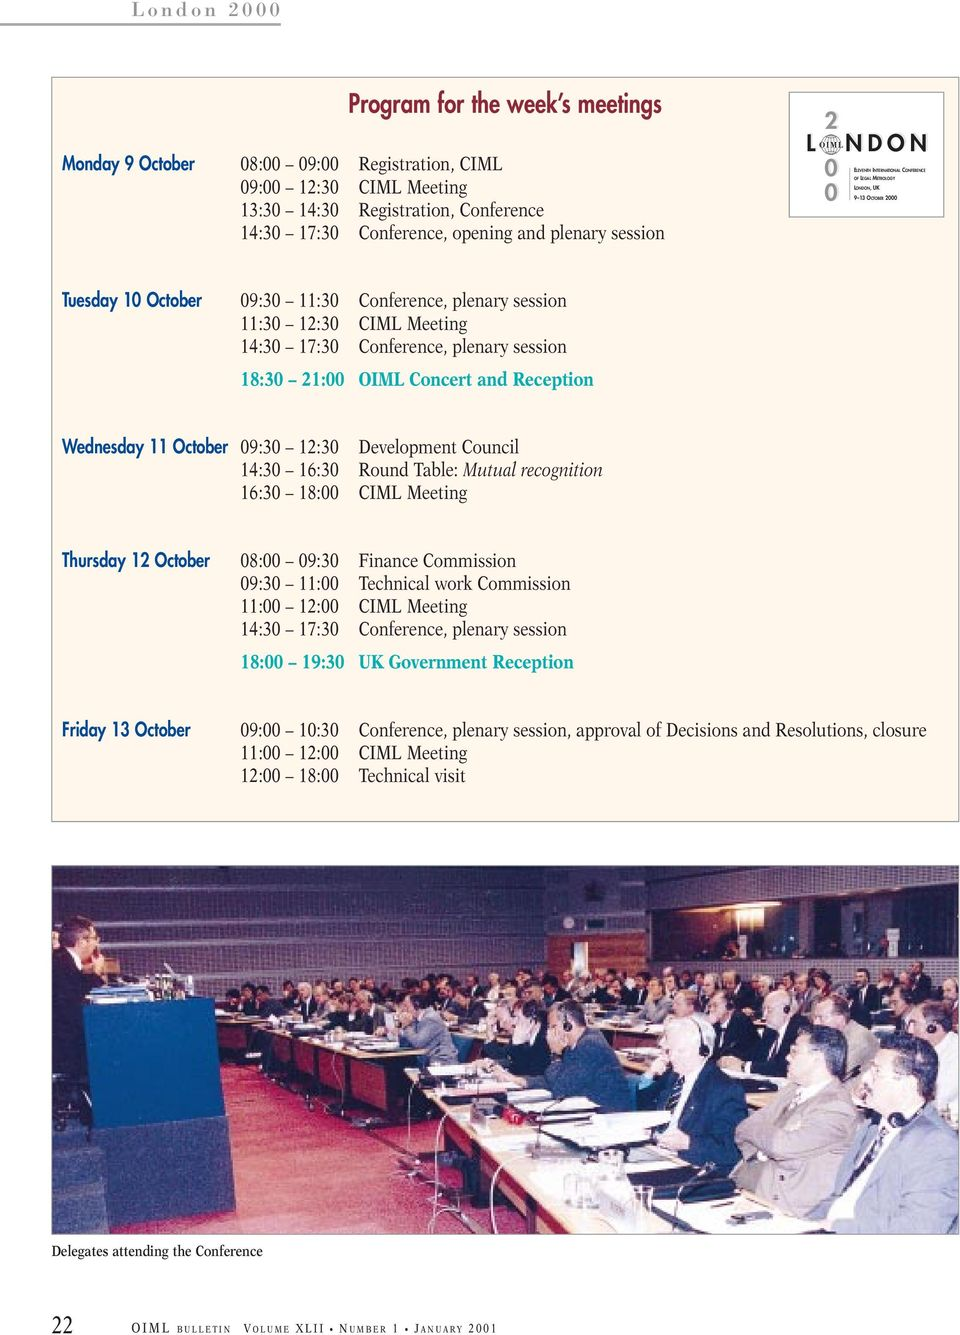 Conference, plenary session 18:30 21:00 OIML Concert and Reception Wednesday 11 October 09:30 12:30 Development Council 14:30 16:30 Round Table: Mutual recognition 16:30 18:00 CIML Meeting Thursday